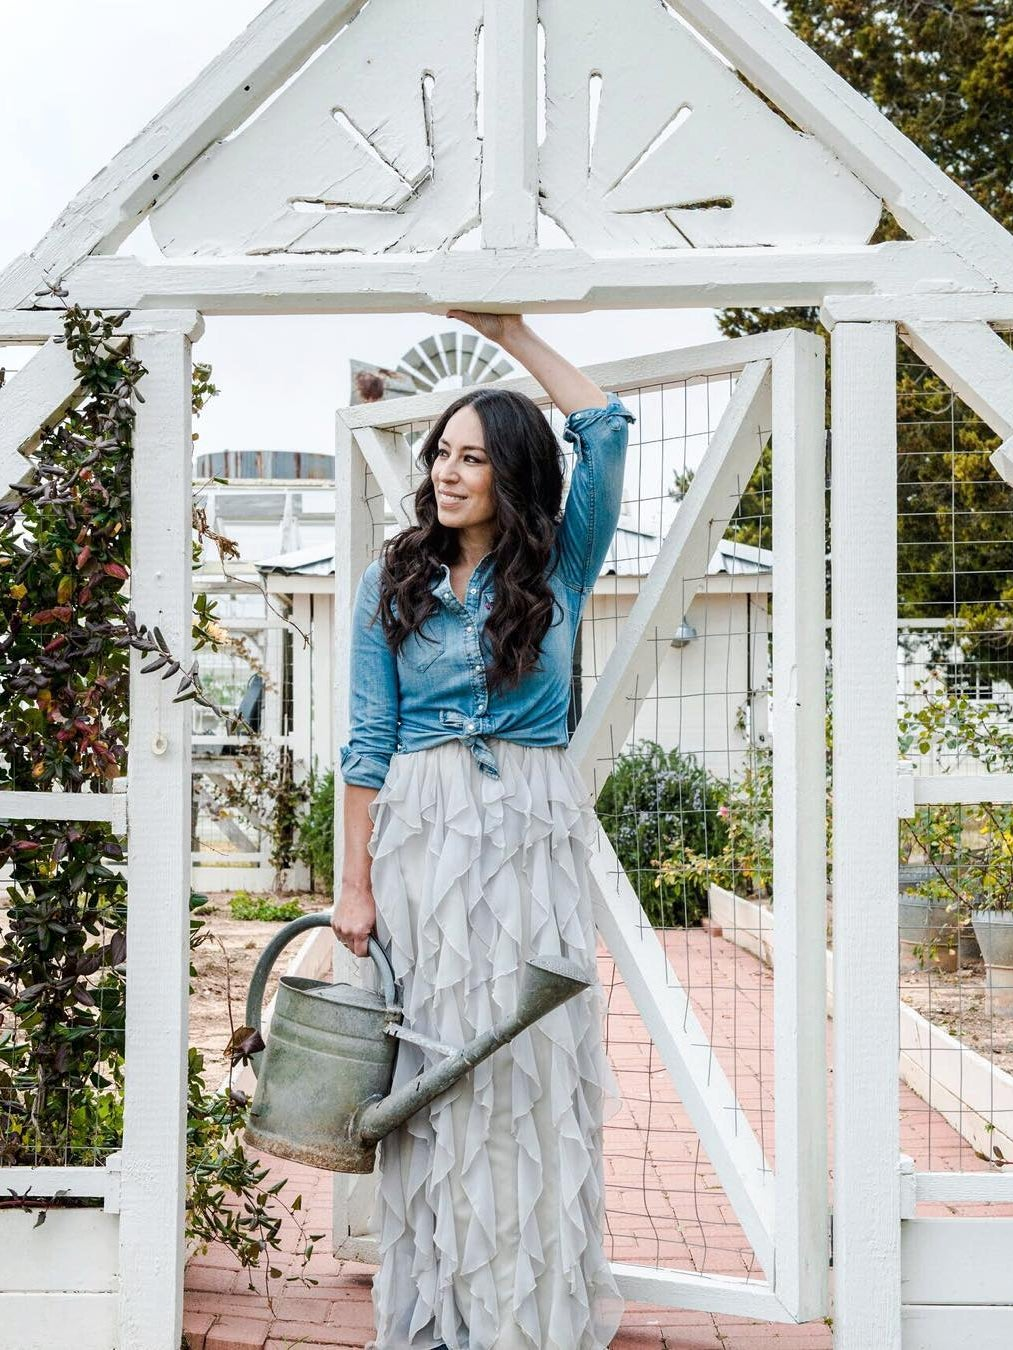 Joanna Gaines Might Be Coming to an Anthropologie Near You